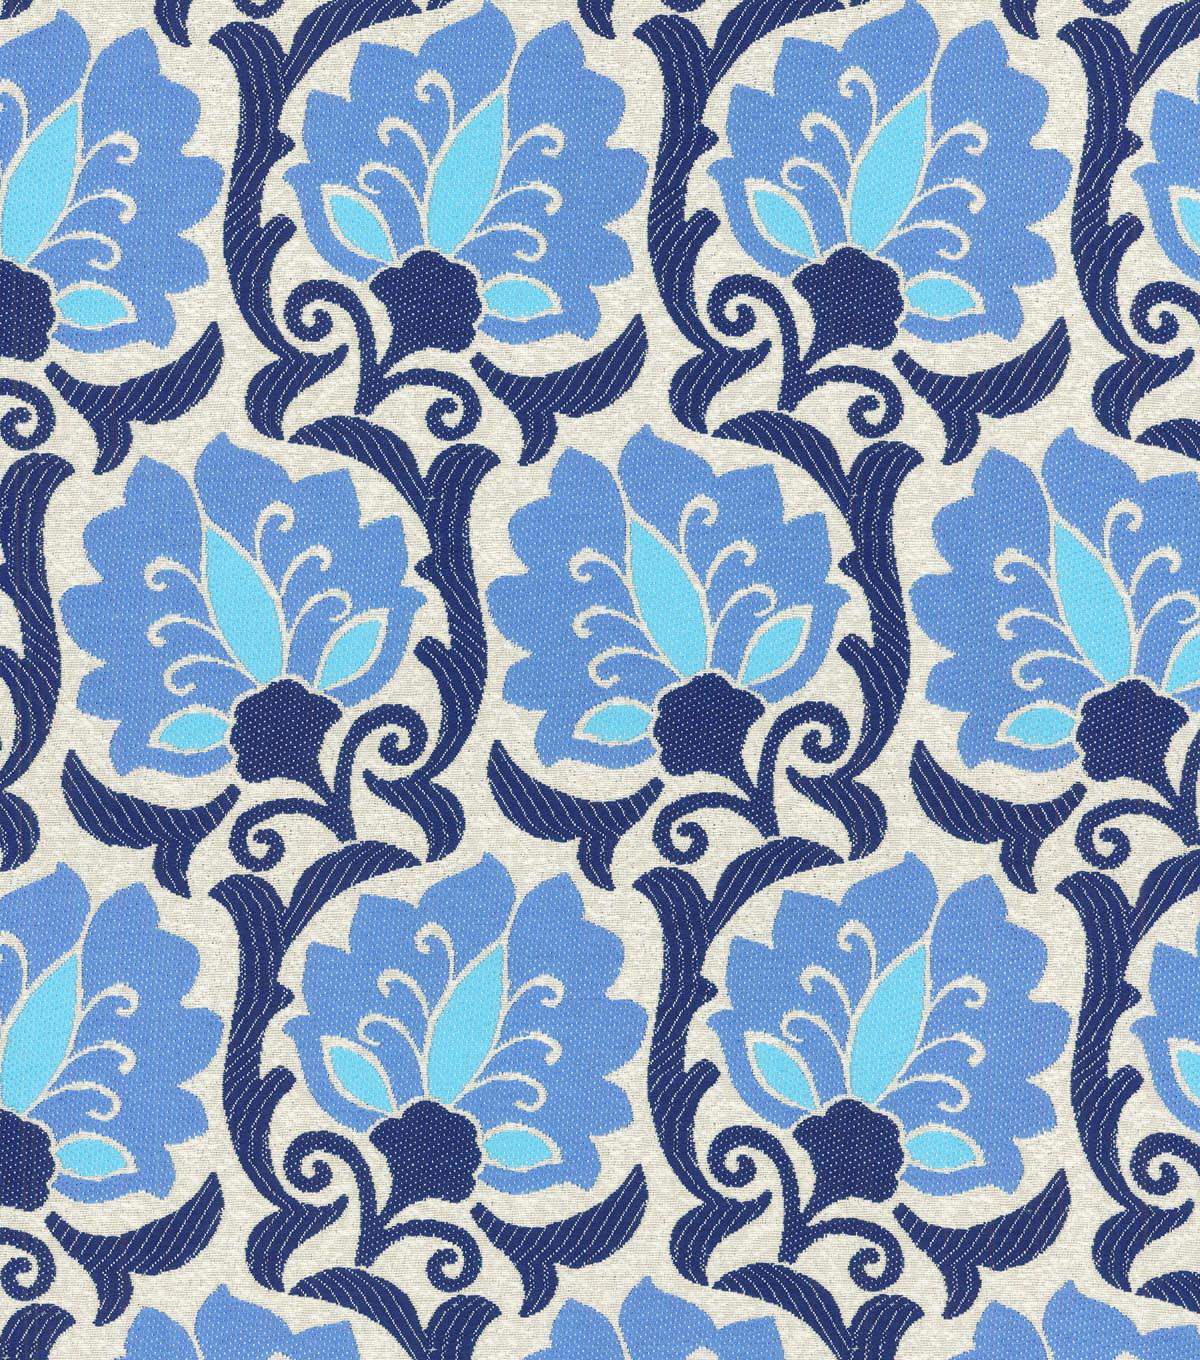 Waverly Multi-Purpose Decor Fabric 56\u0022-Playful Prose/Indigo